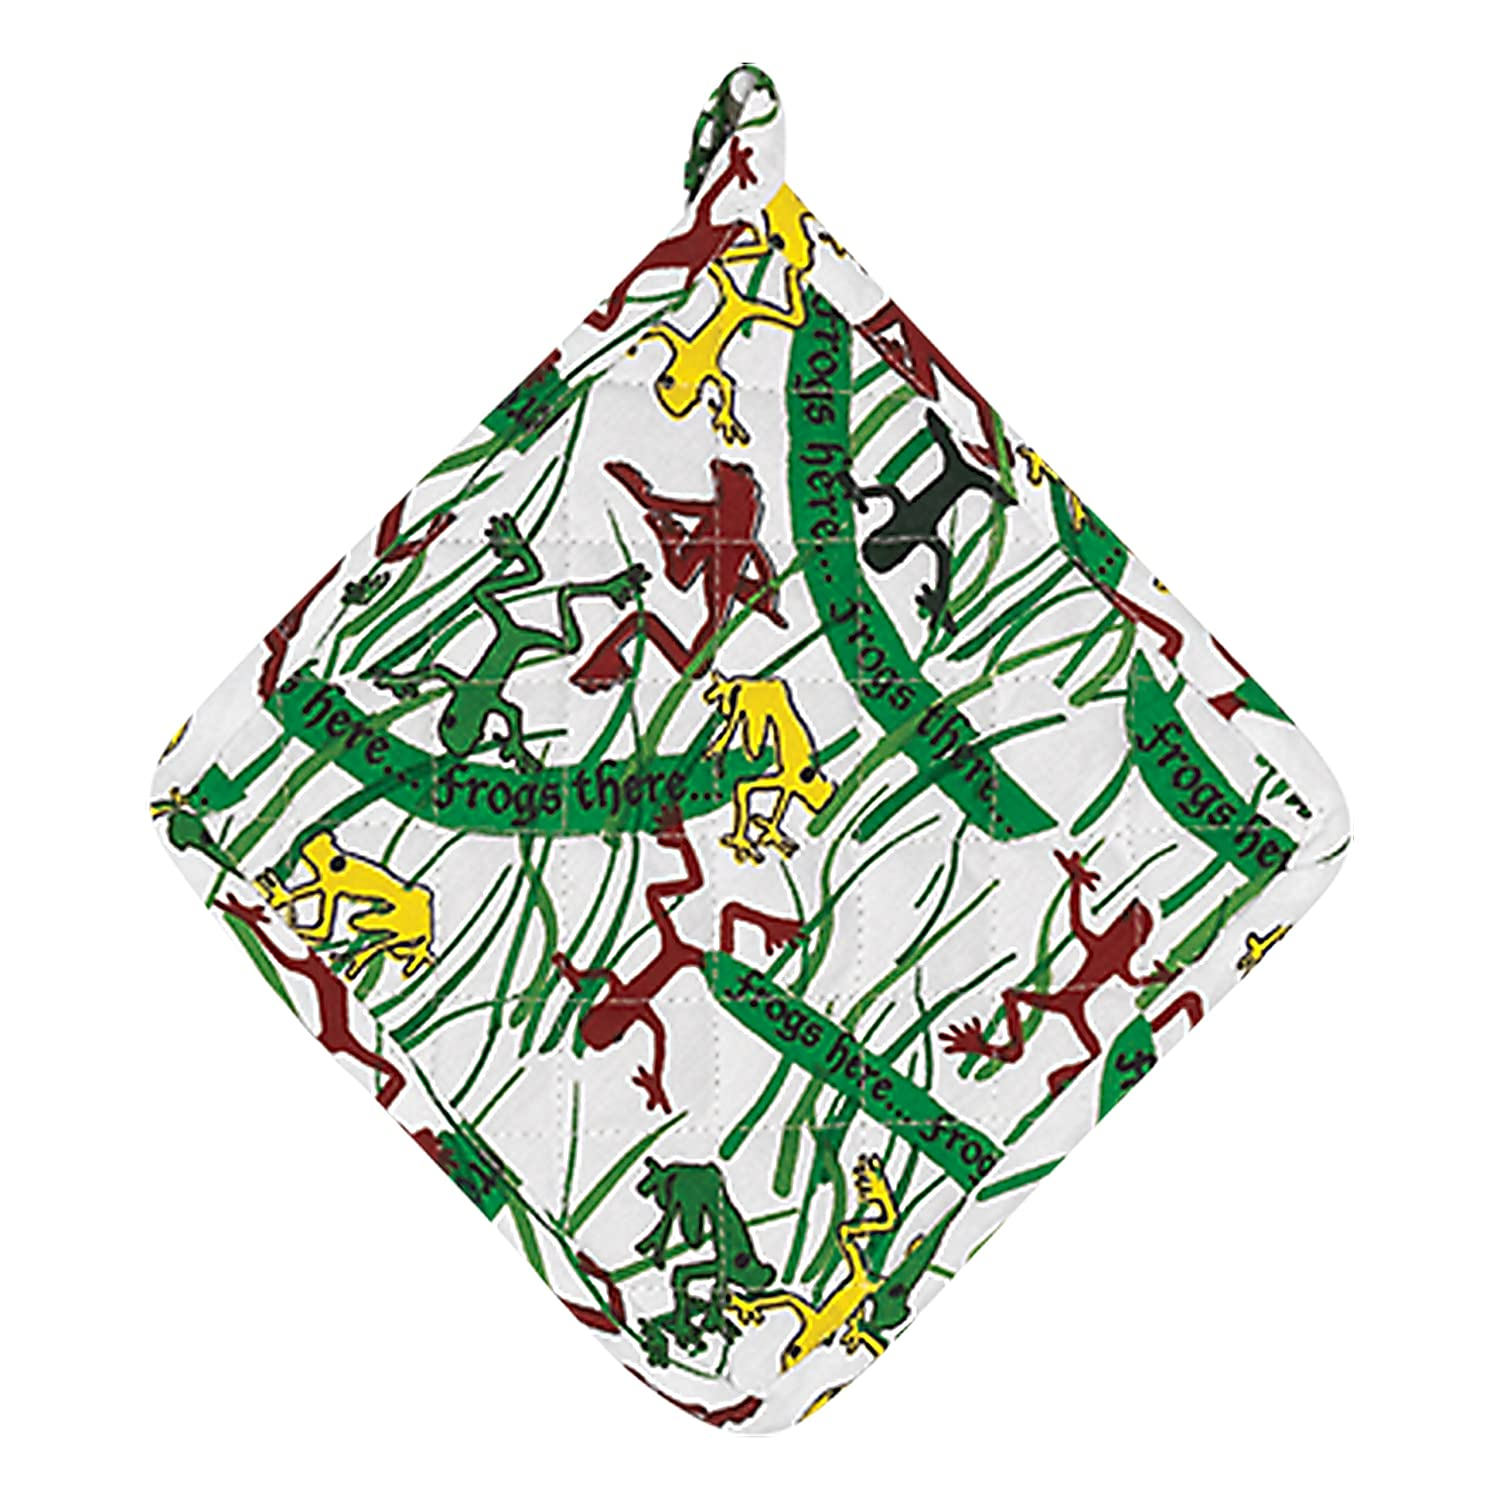 The Kosher Cook Passover Pot Holder Oven Mitt - Frog Print Design - 100% Cotton - Pesach Seder and Kitchen Accessories